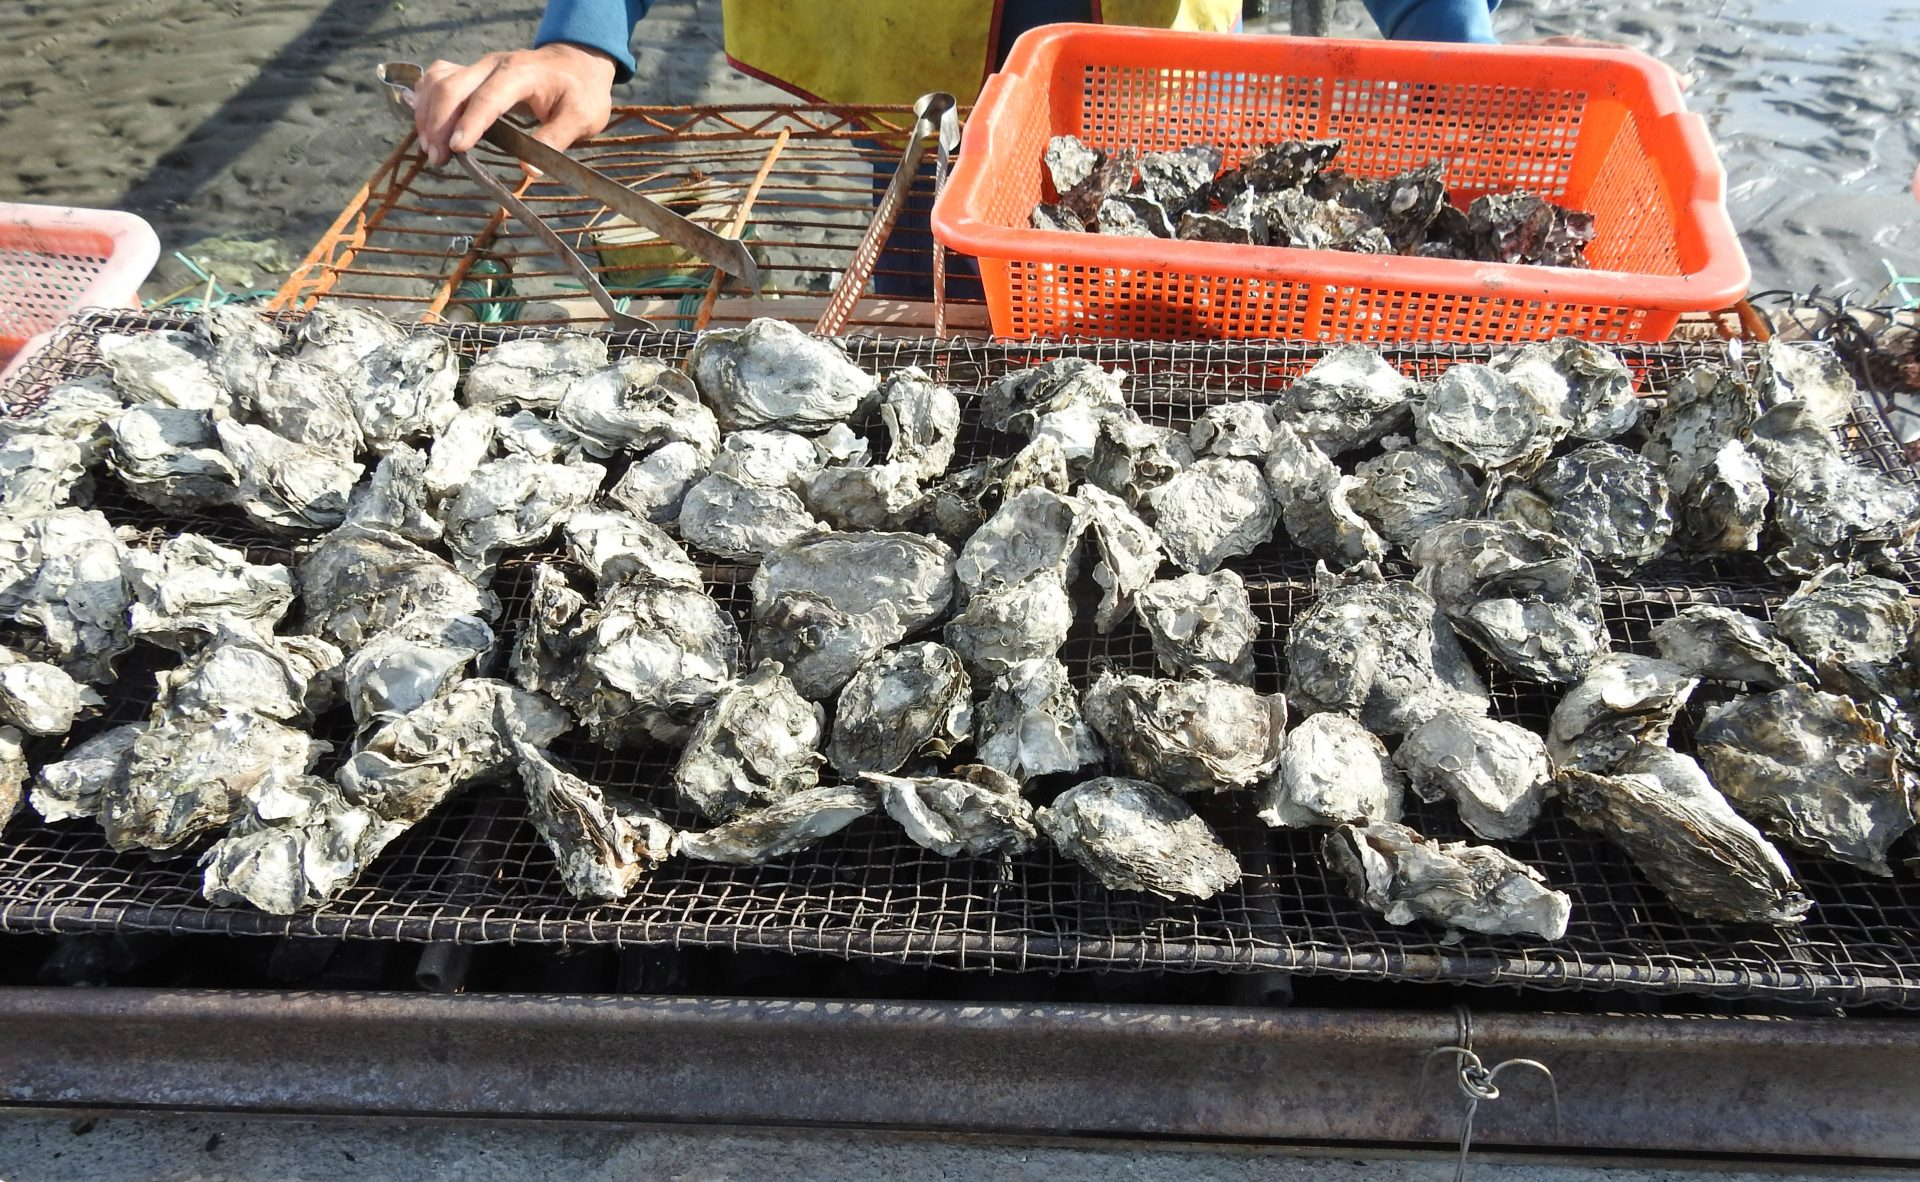 Fresh oysters are grilled on a makeshift facility at the lagoon in Wanggong. (Image: Billy Shyu/ Vision Times)